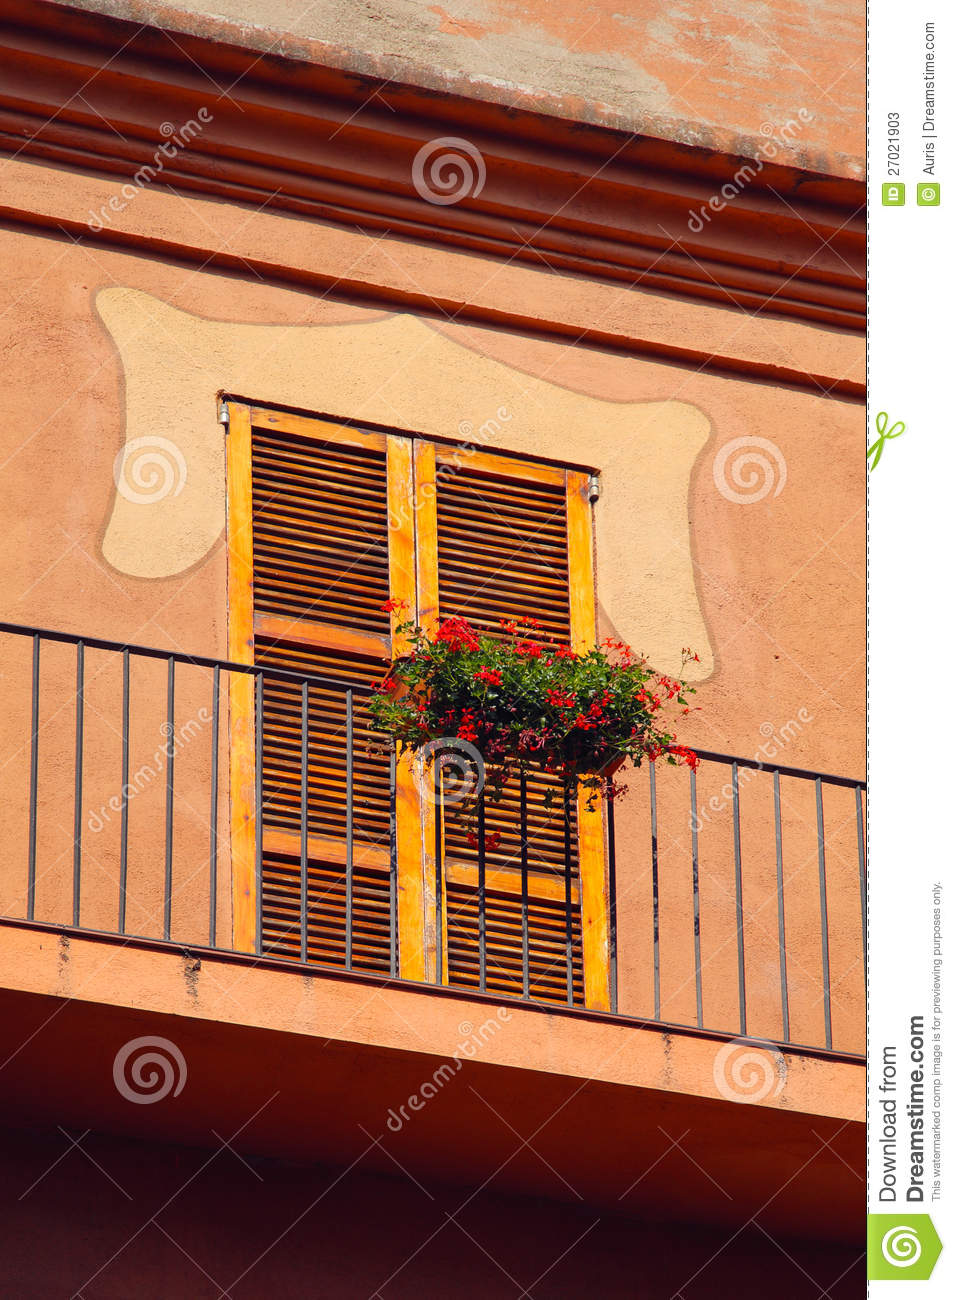 Small spanish balcony stock photos image 27021903 for Balcony in spanish